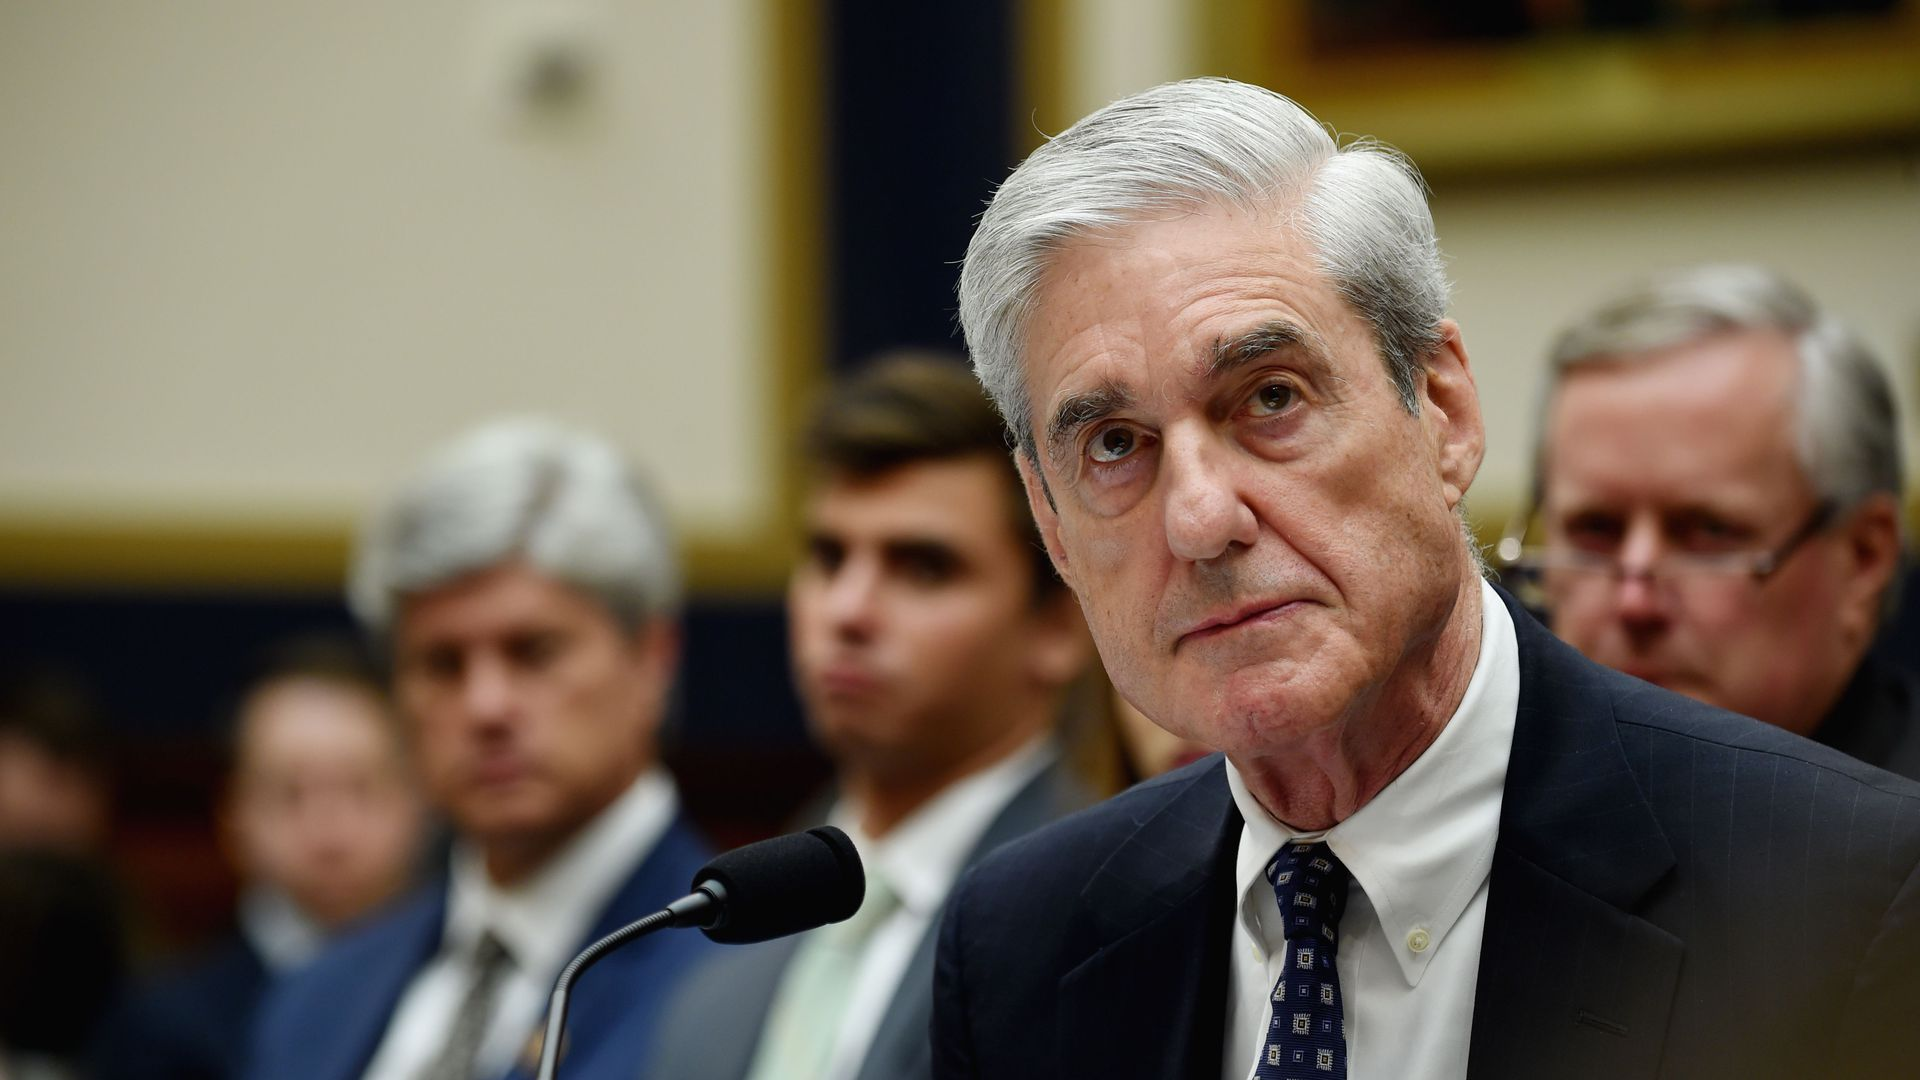 House investigating whether Trump lied in written answers to Mueller